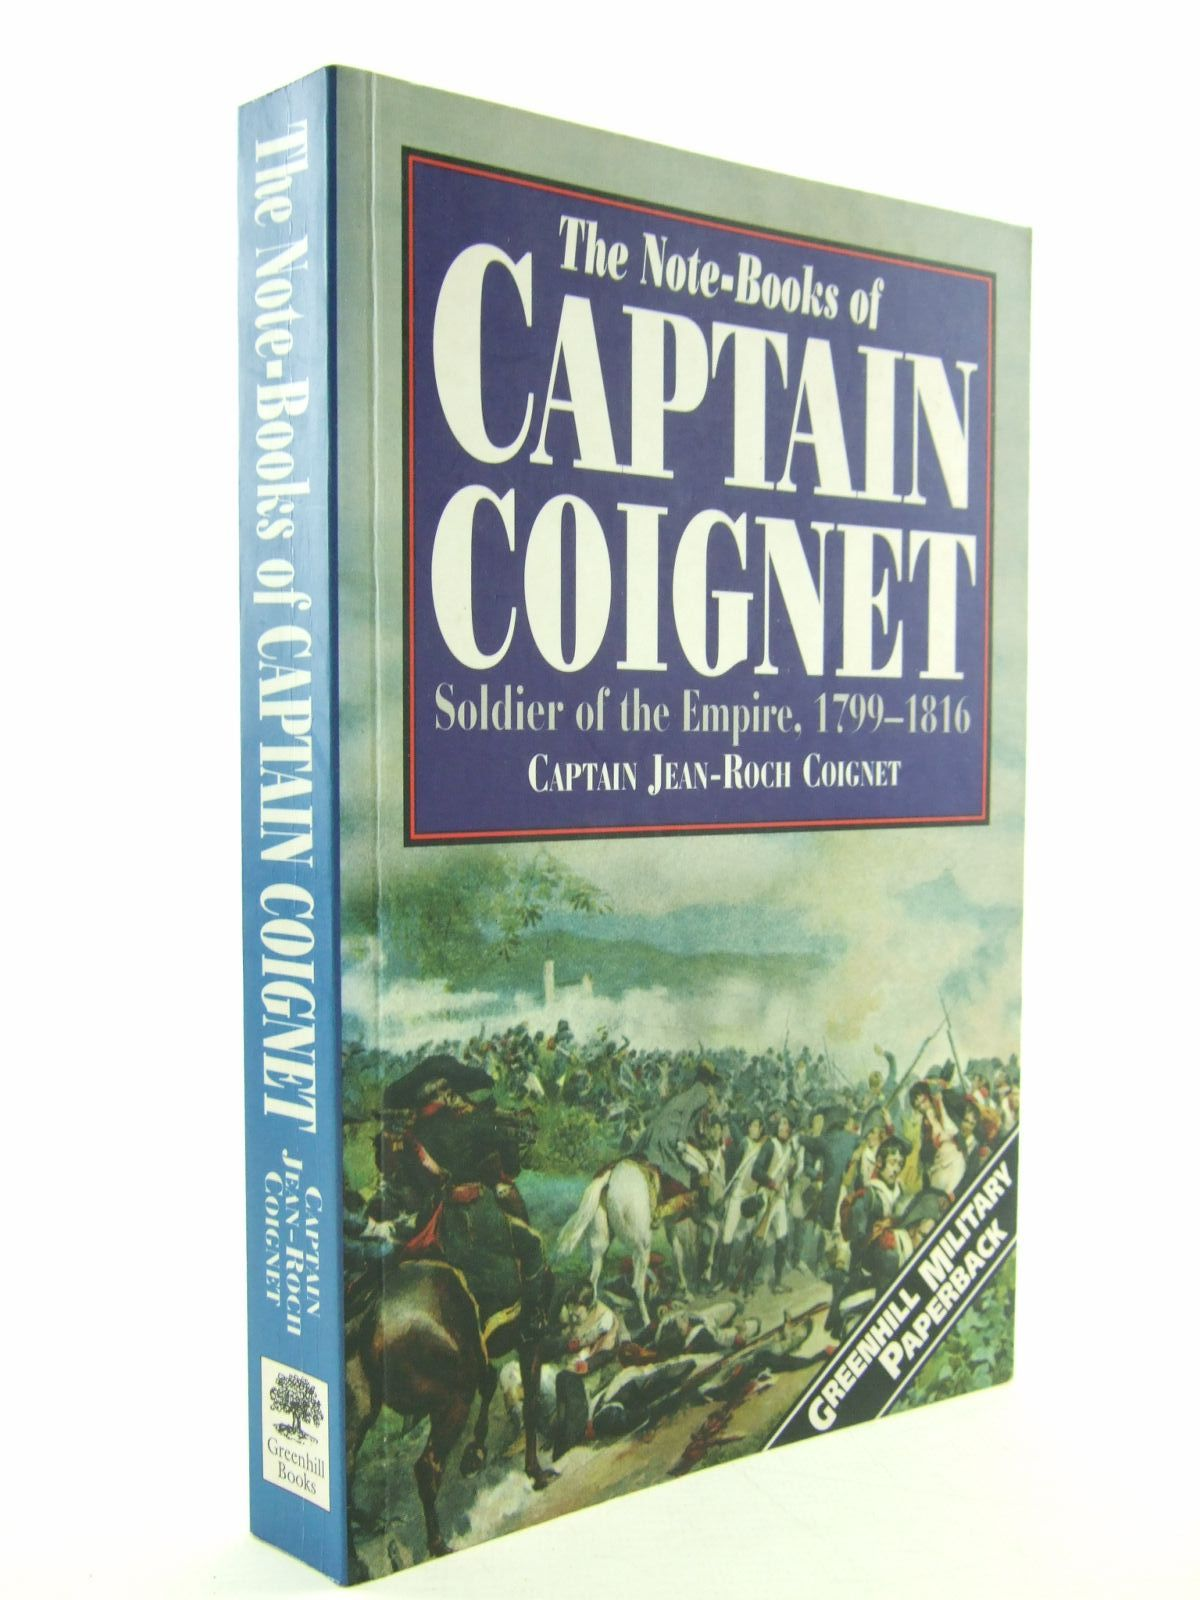 Photo of THE NOTE-BOOKS OF CAPTAIN COIGNET SOLDIER OF THE EMPIRE 1776-1850 written by Coignet, Jean-Roch<br />Larchey, Loredan published by Greenhill Books, Stackpole Books (STOCK CODE: 1707511)  for sale by Stella & Rose's Books